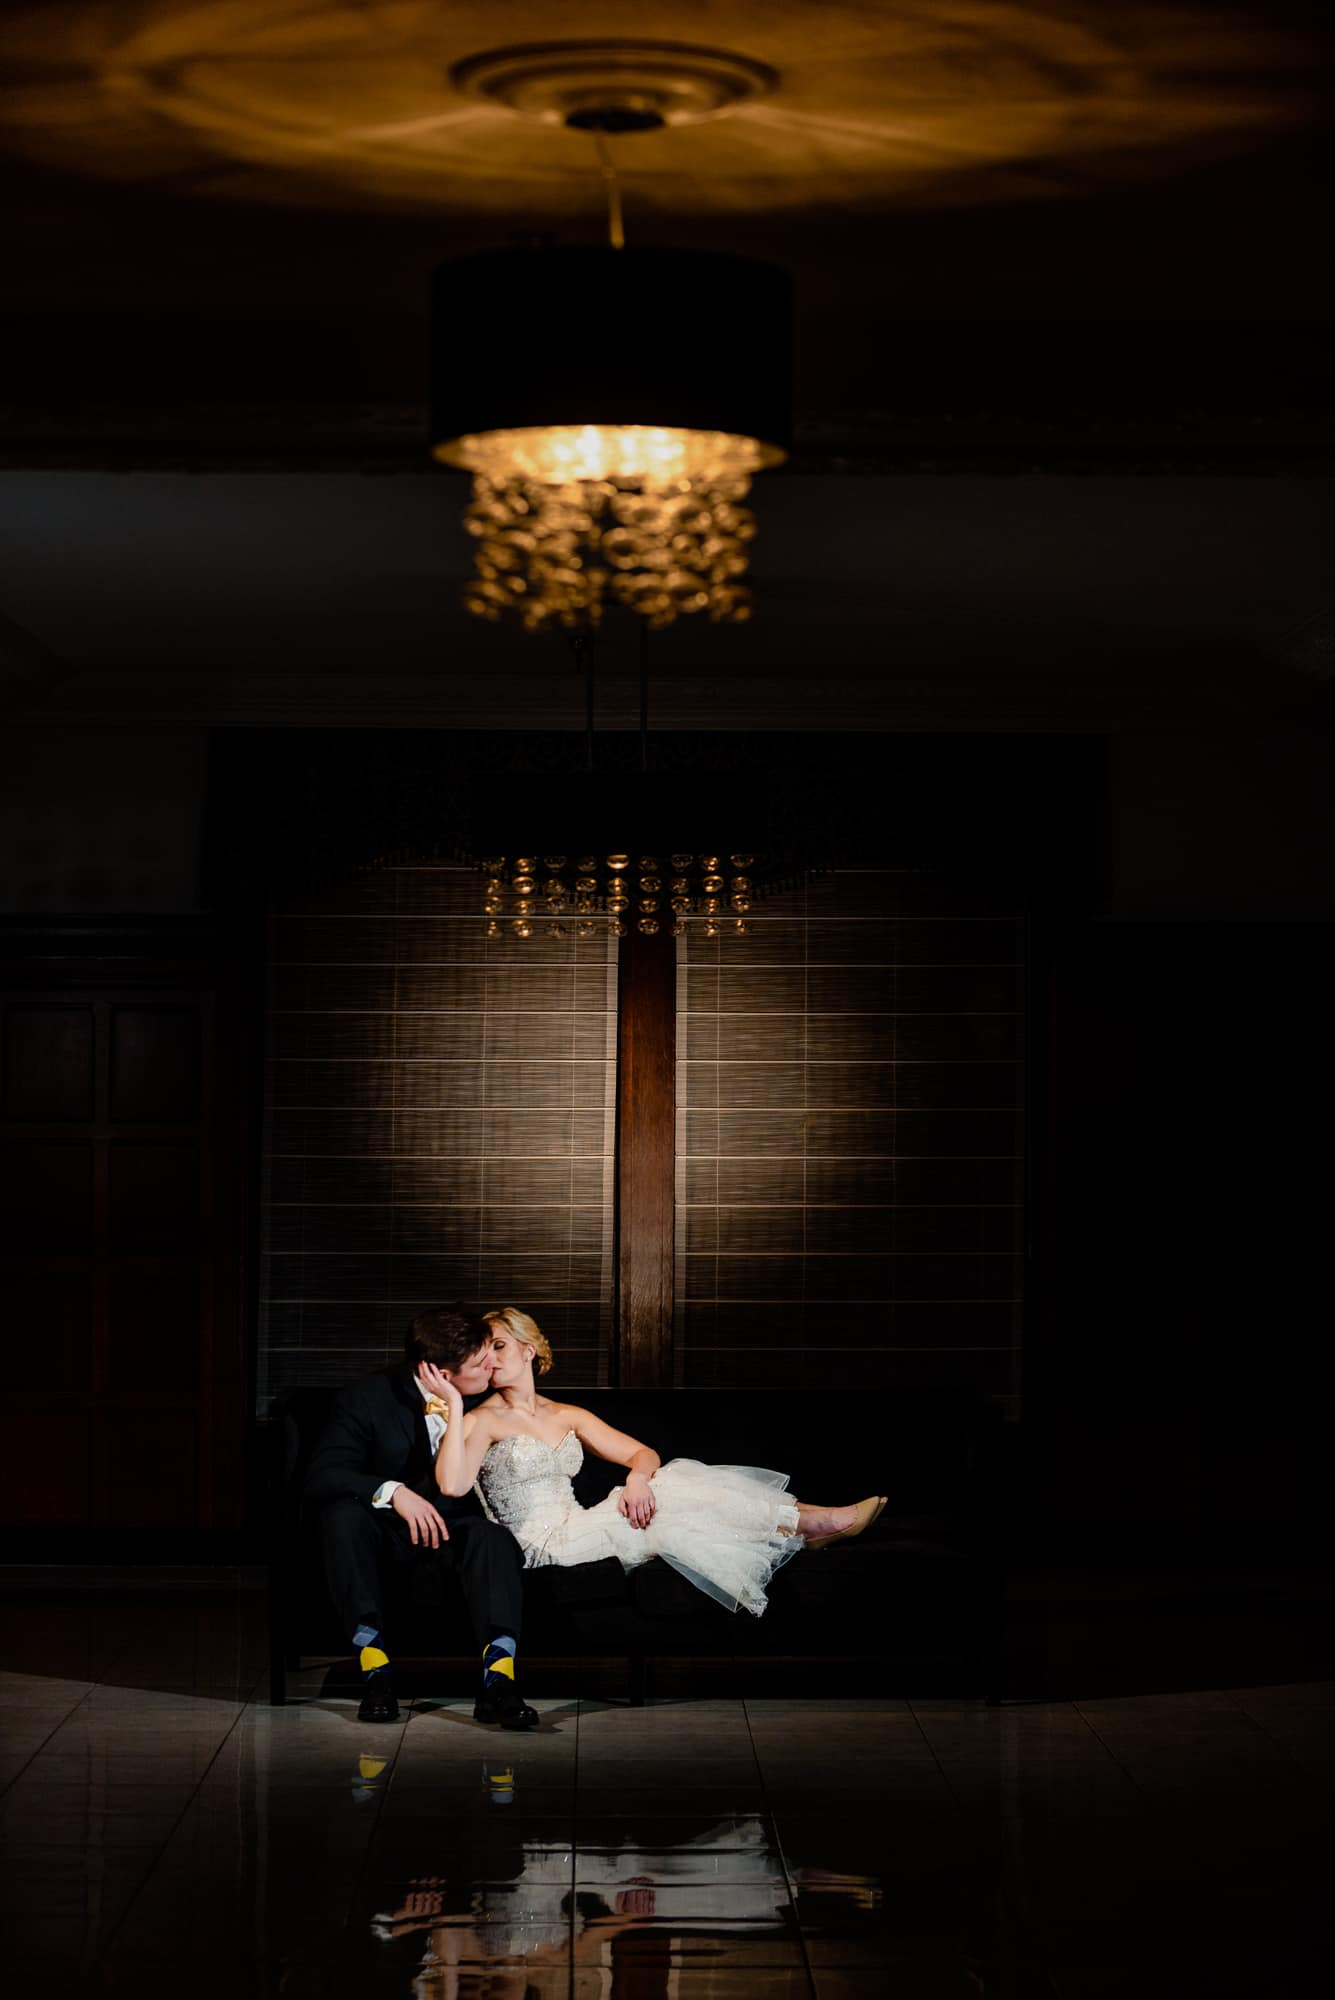 Bride and groom romantic night shot